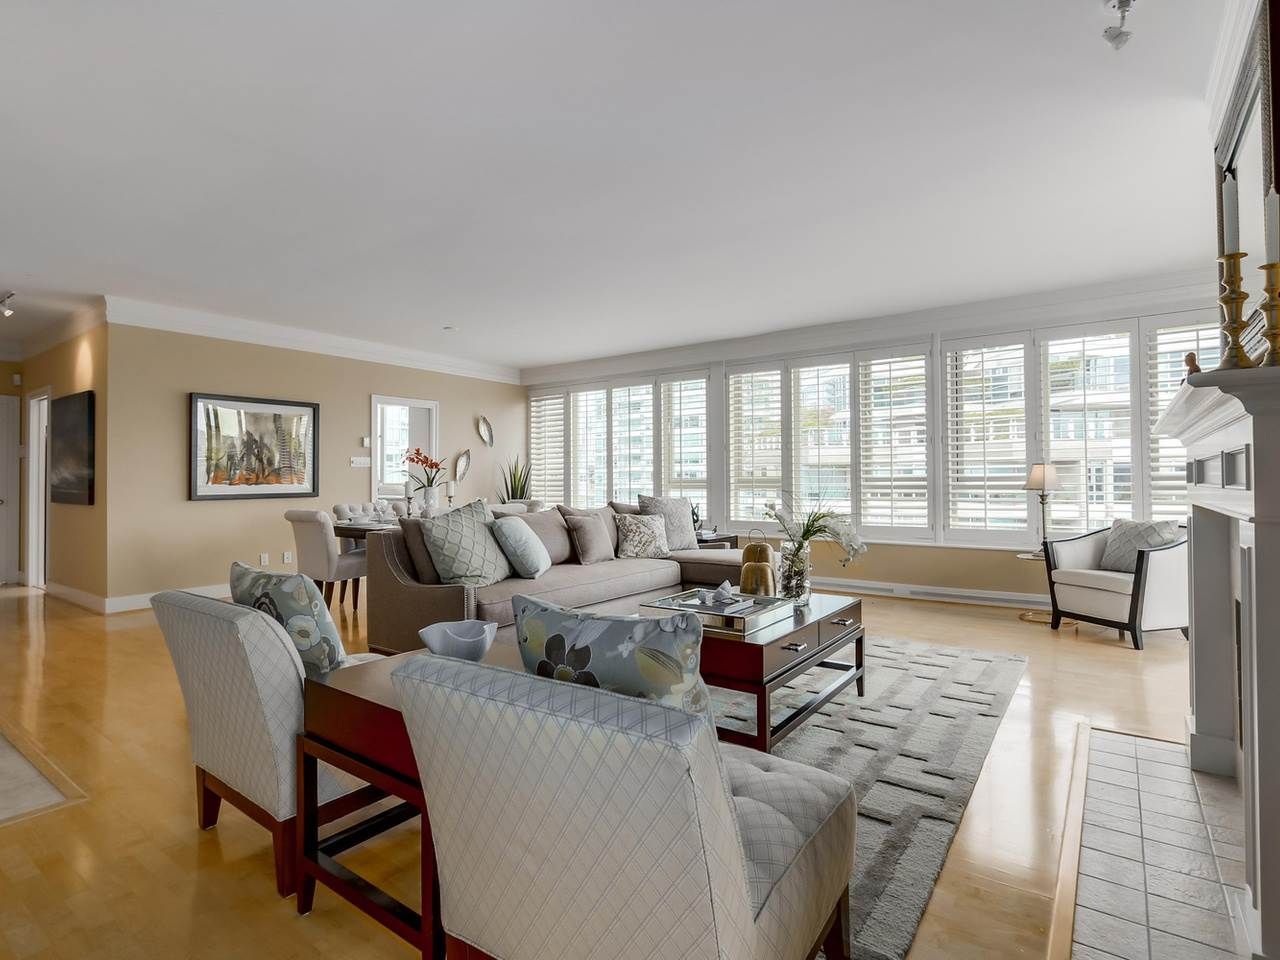 """Photo 5: Photos: 800 1675 HORNBY Street in Vancouver: Yaletown Condo for sale in """"SEAWALK SOUTH"""" (Vancouver West)  : MLS®# R2083569"""